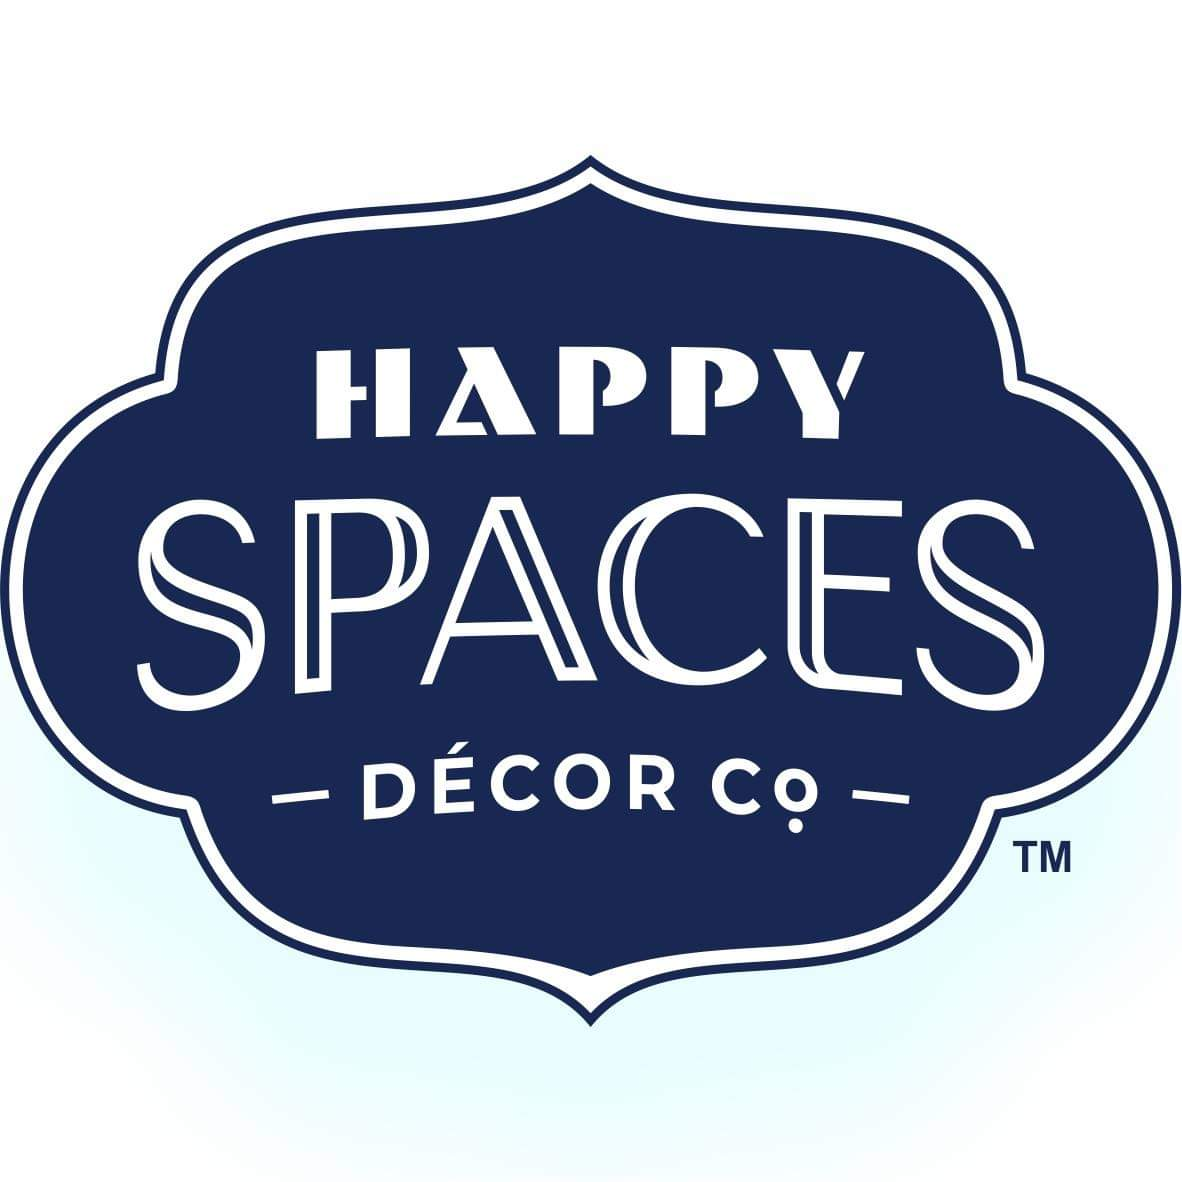 graphic-designer-mumbai-Happy-Spaces-decor-co.-1years-2years-full-time